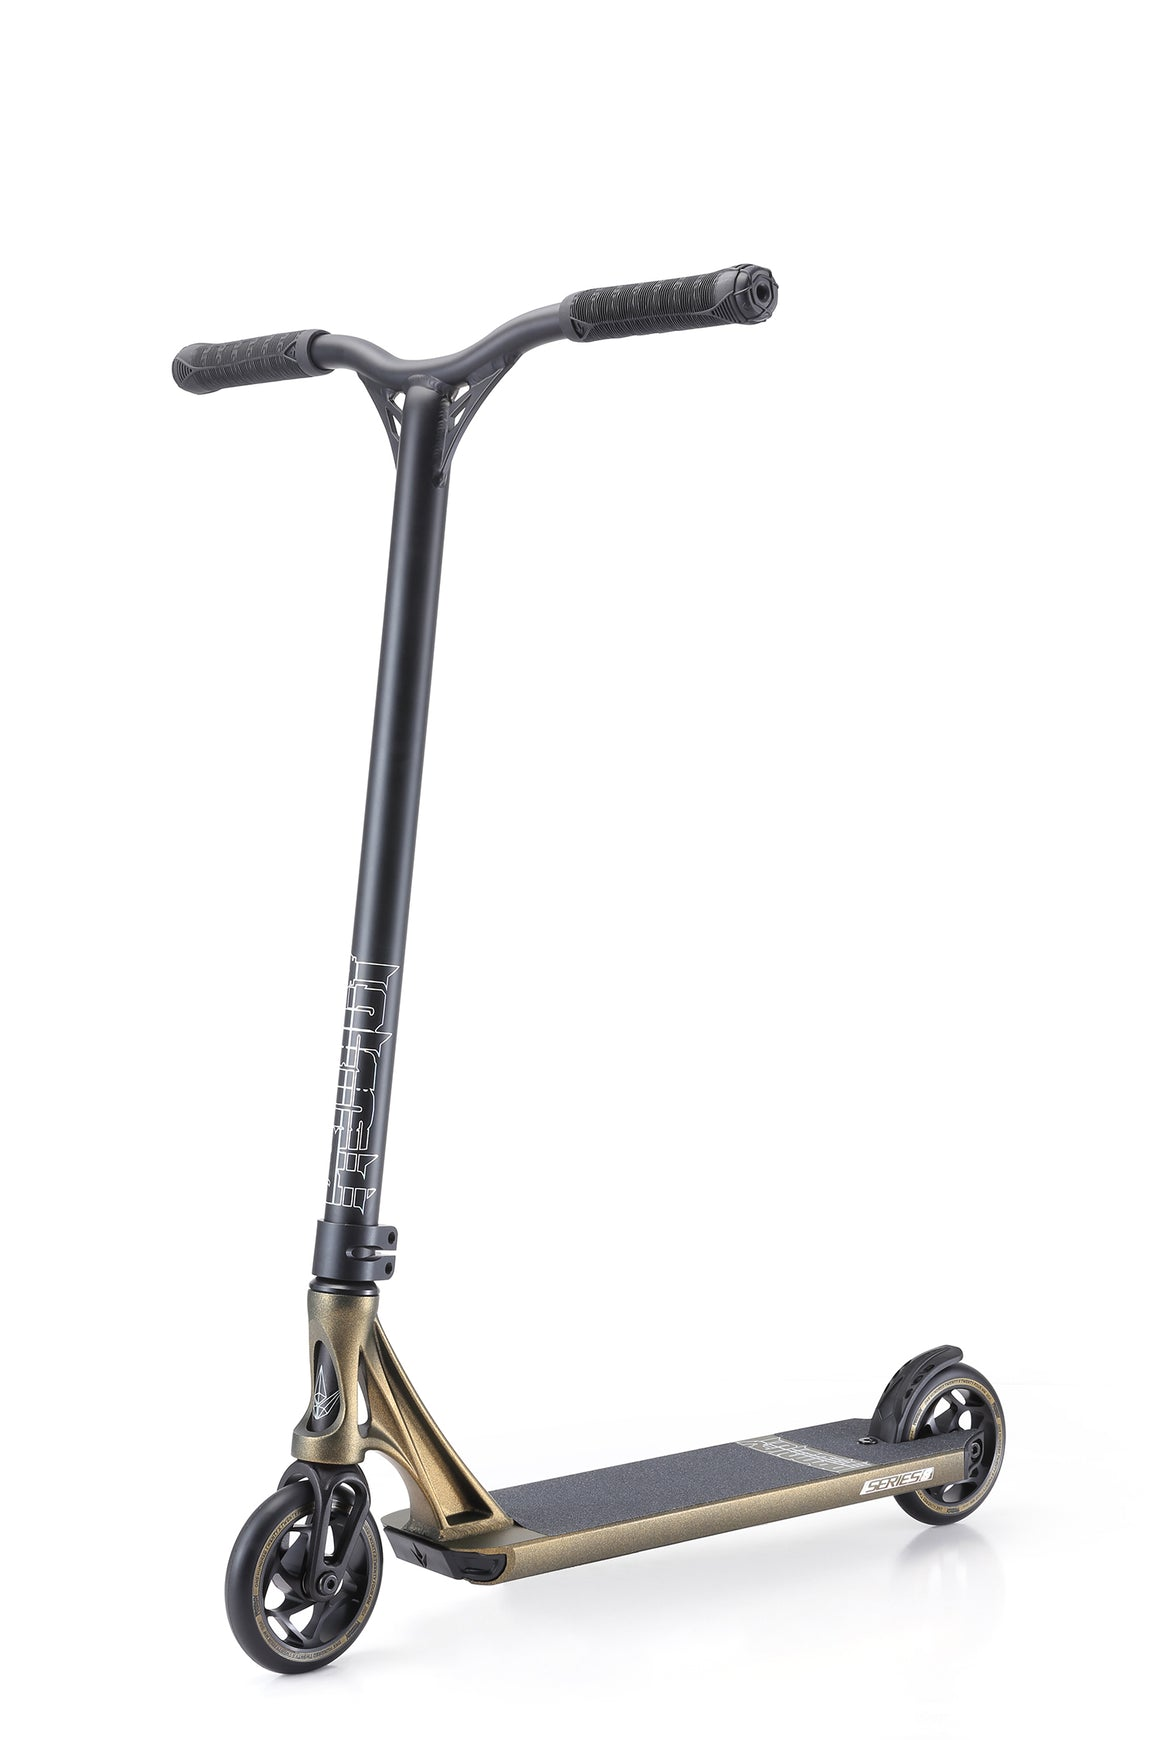 Envy Prodigy Series 8 Complete Scooter - Gold